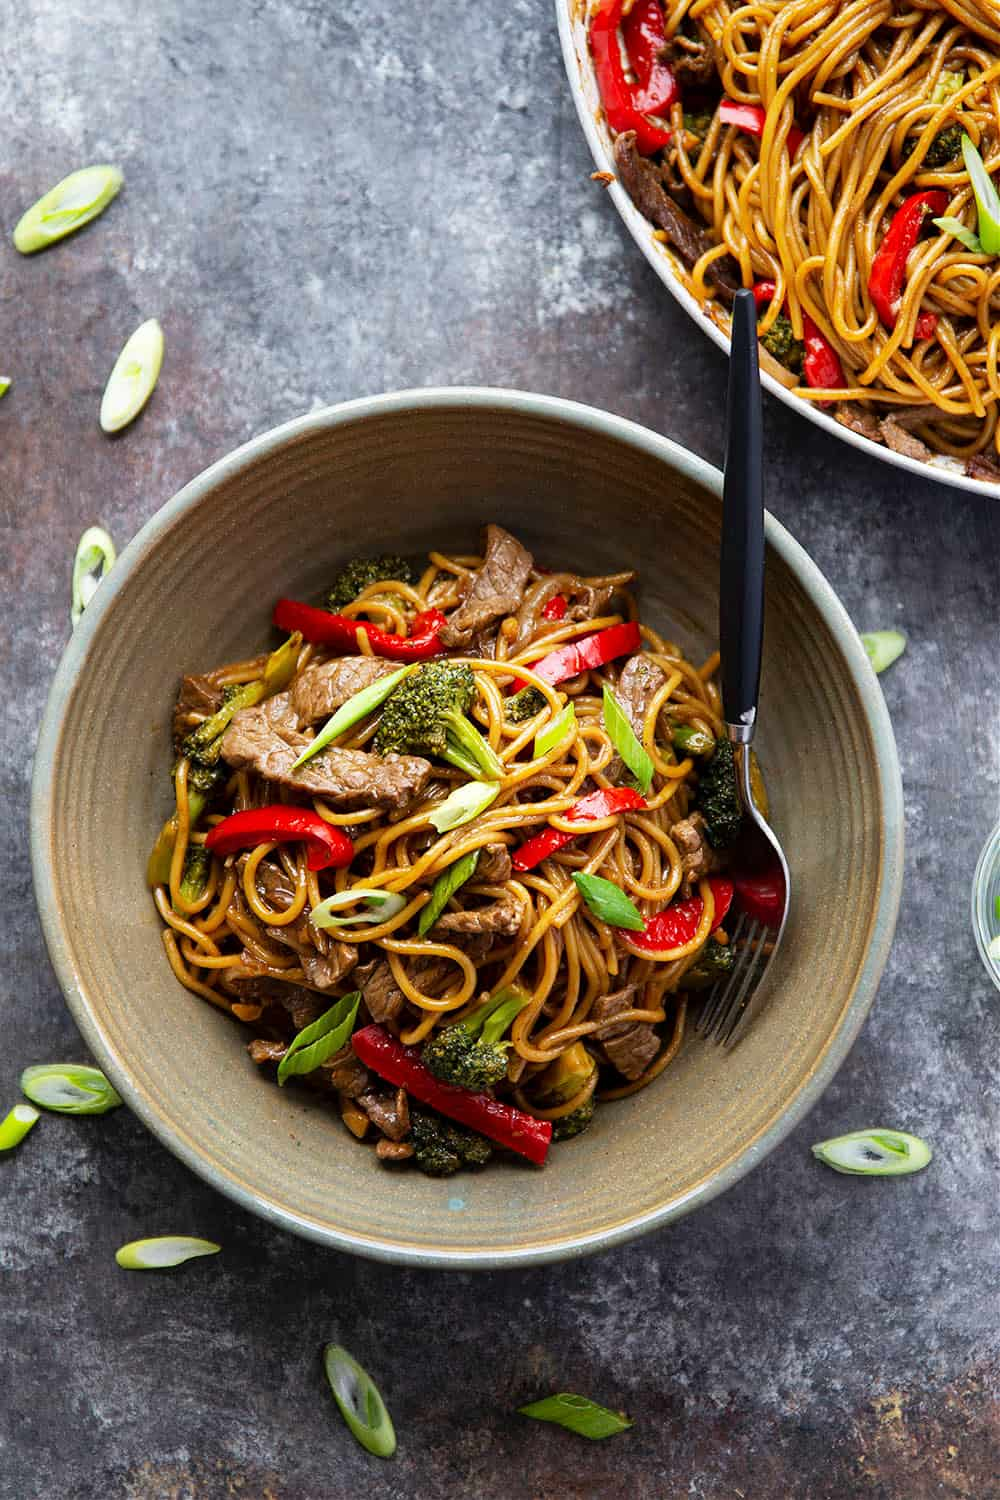 Ready in 30 minutes and packed with tons of juicy beef, tender veggies, and a killer teriyaki sauce, this beef teriyaki noodle stir fry will quickly become a regular dinner routine!